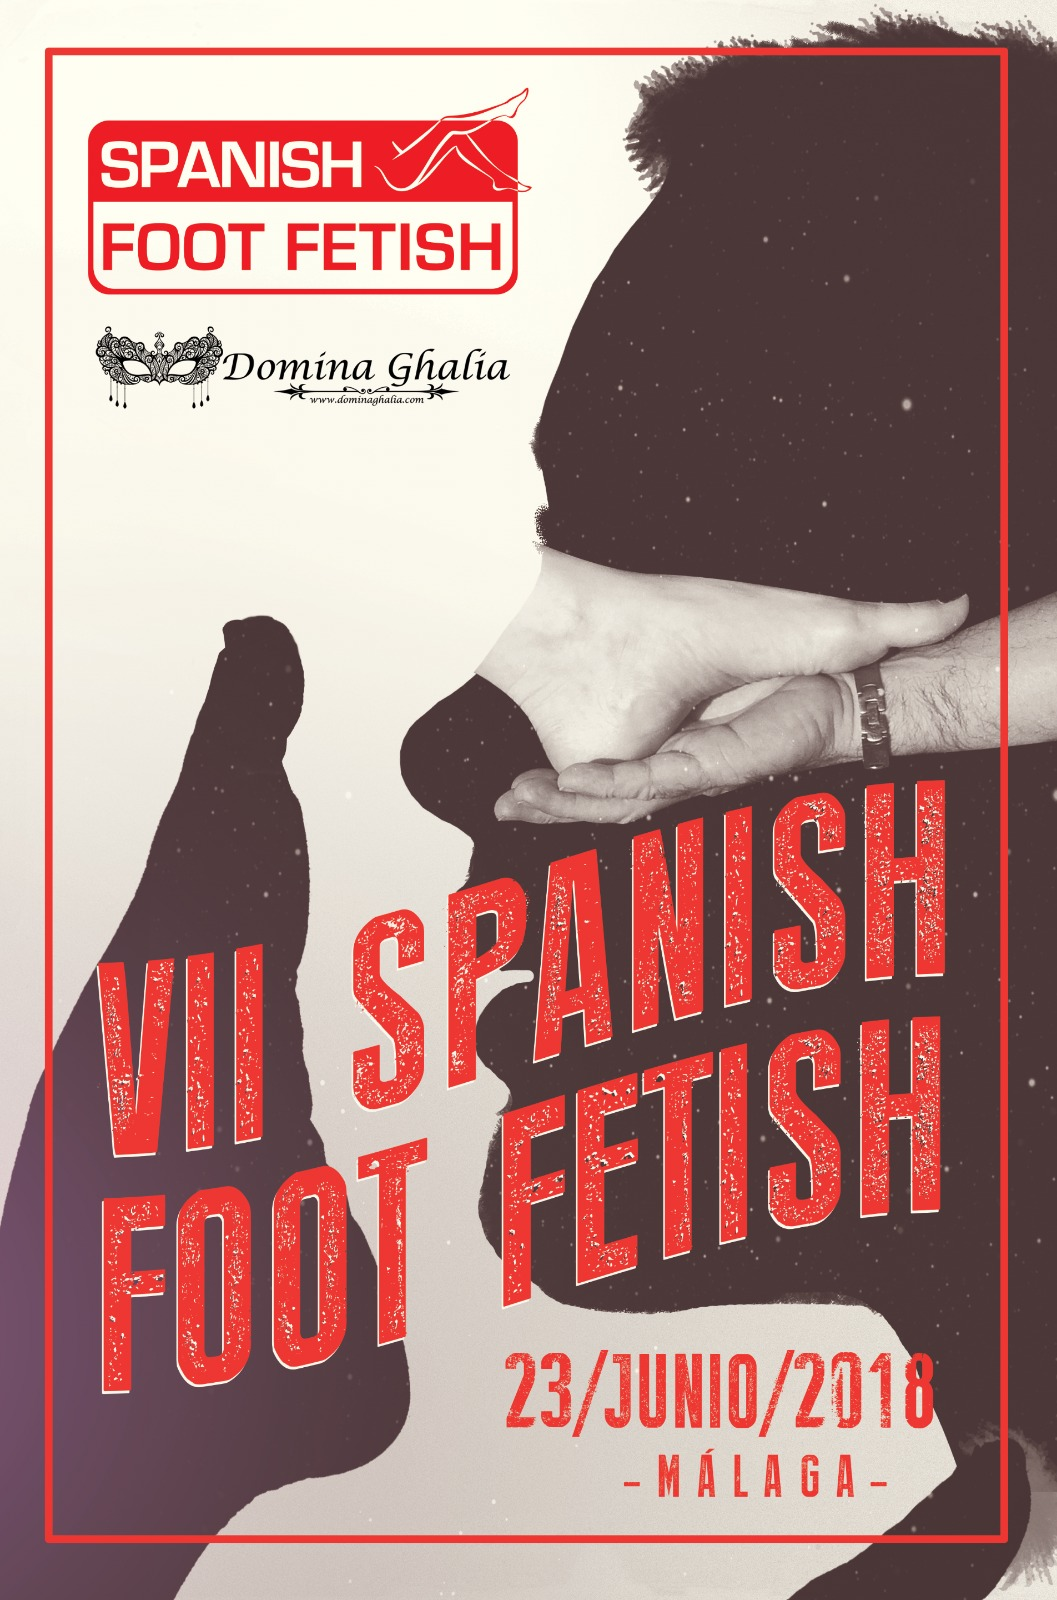 Spanish footfetish fiesta